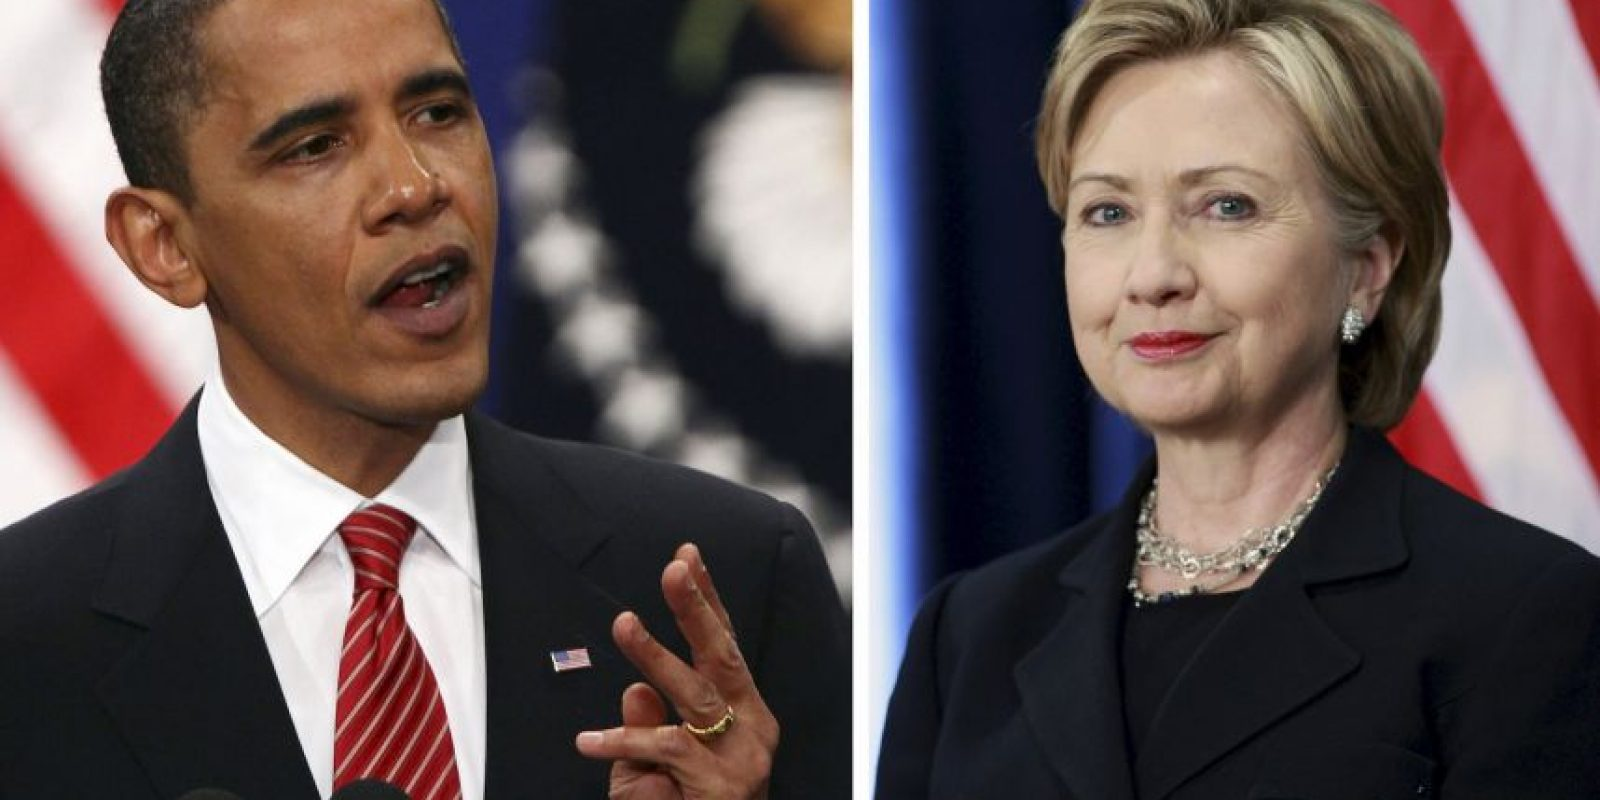 Obama sumó a Clinton a su gabinete. Foto: Getty Images